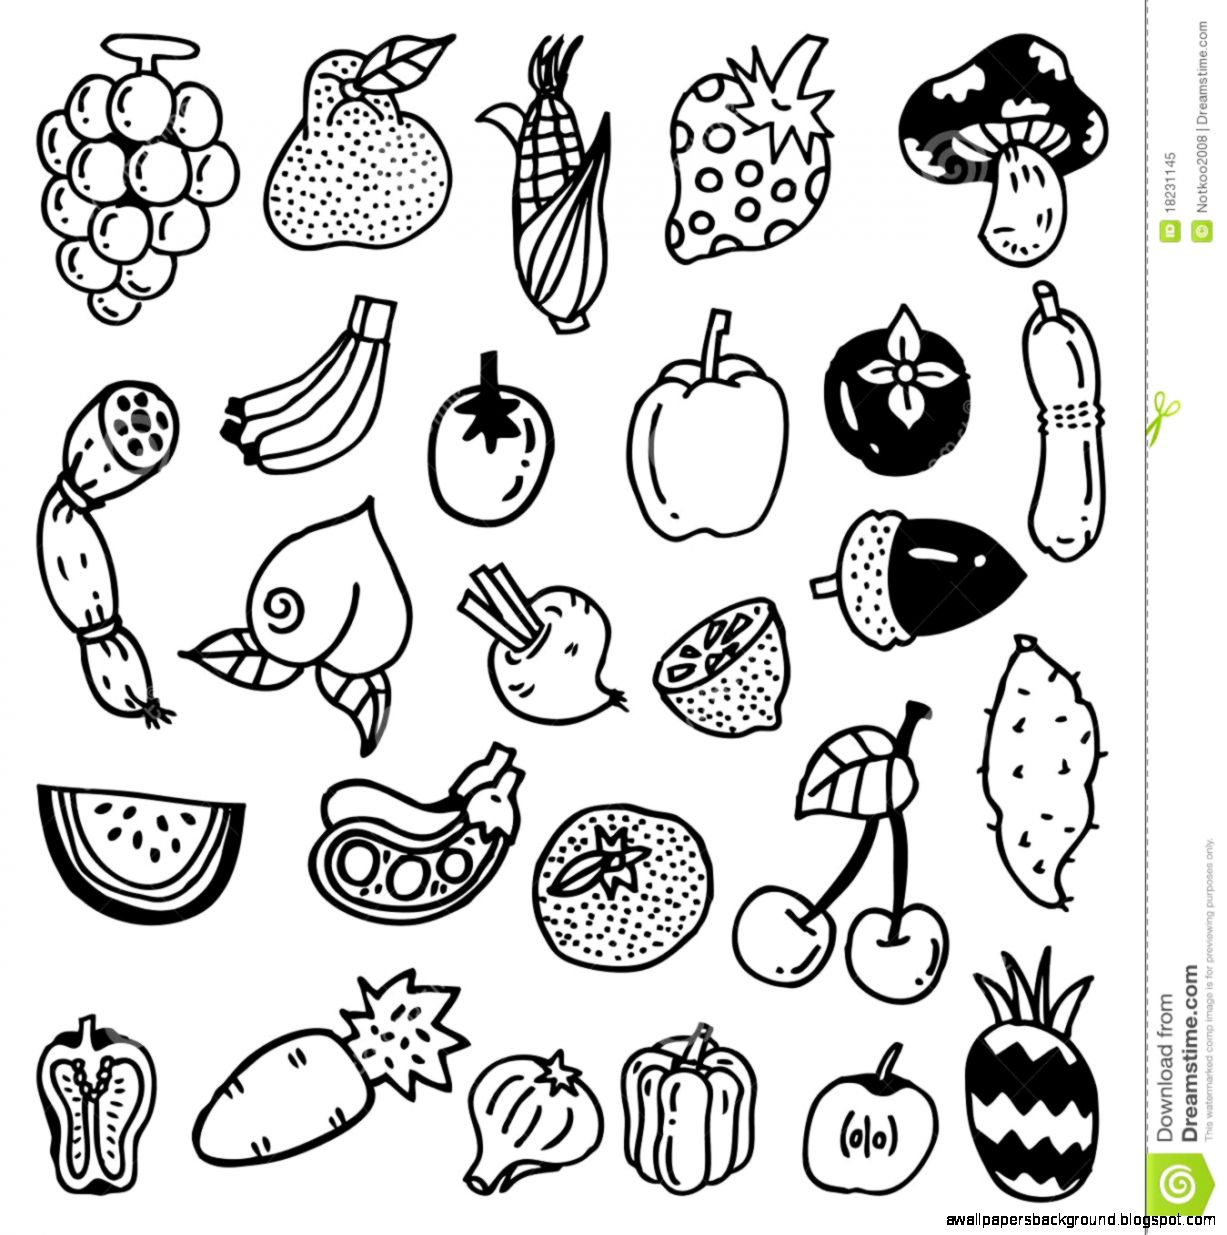 1227x1235 Fruits And Vegetables Drawing Wallpapers Background